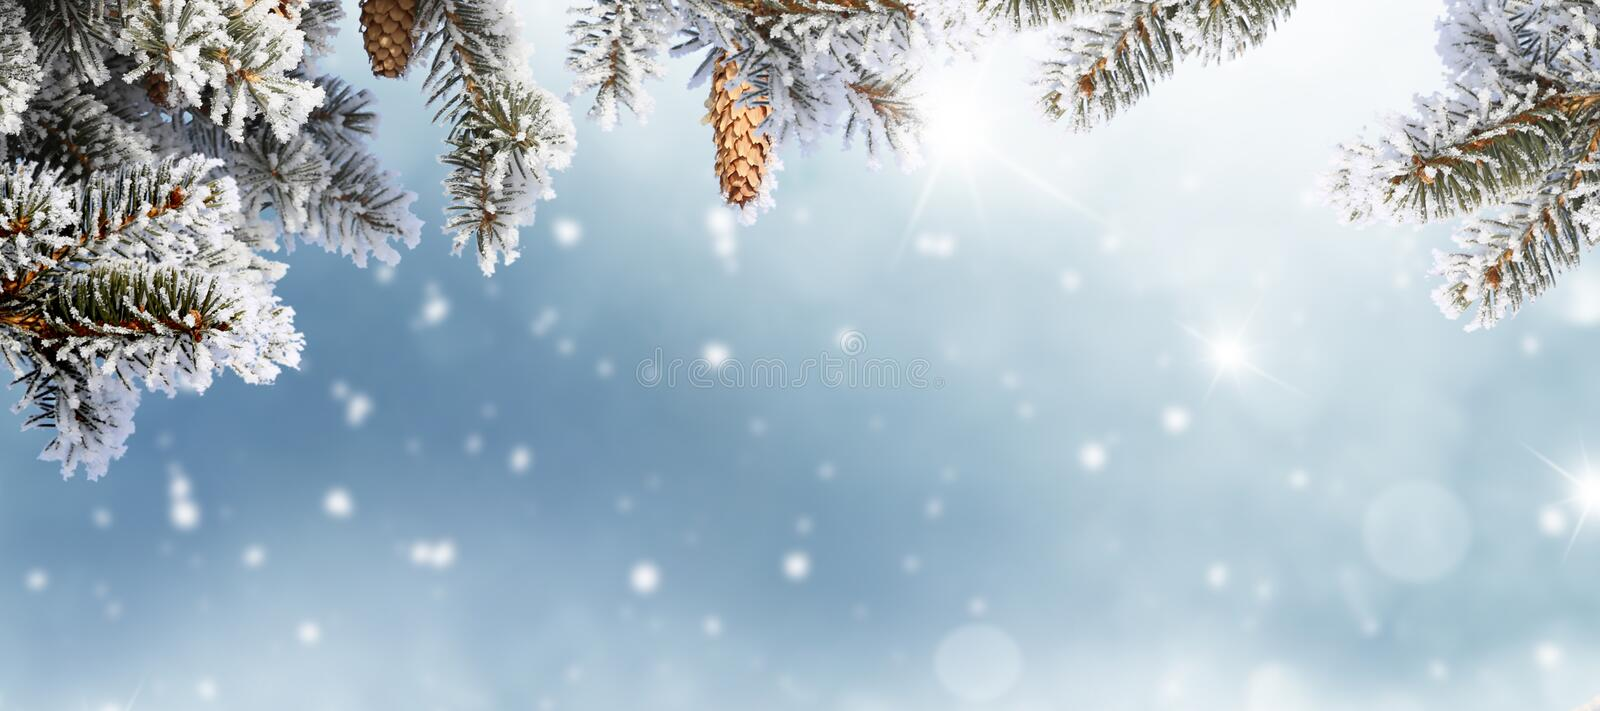 Merry Christmas and happy new year greeting card. Winter landscape with snow royalty free stock photography